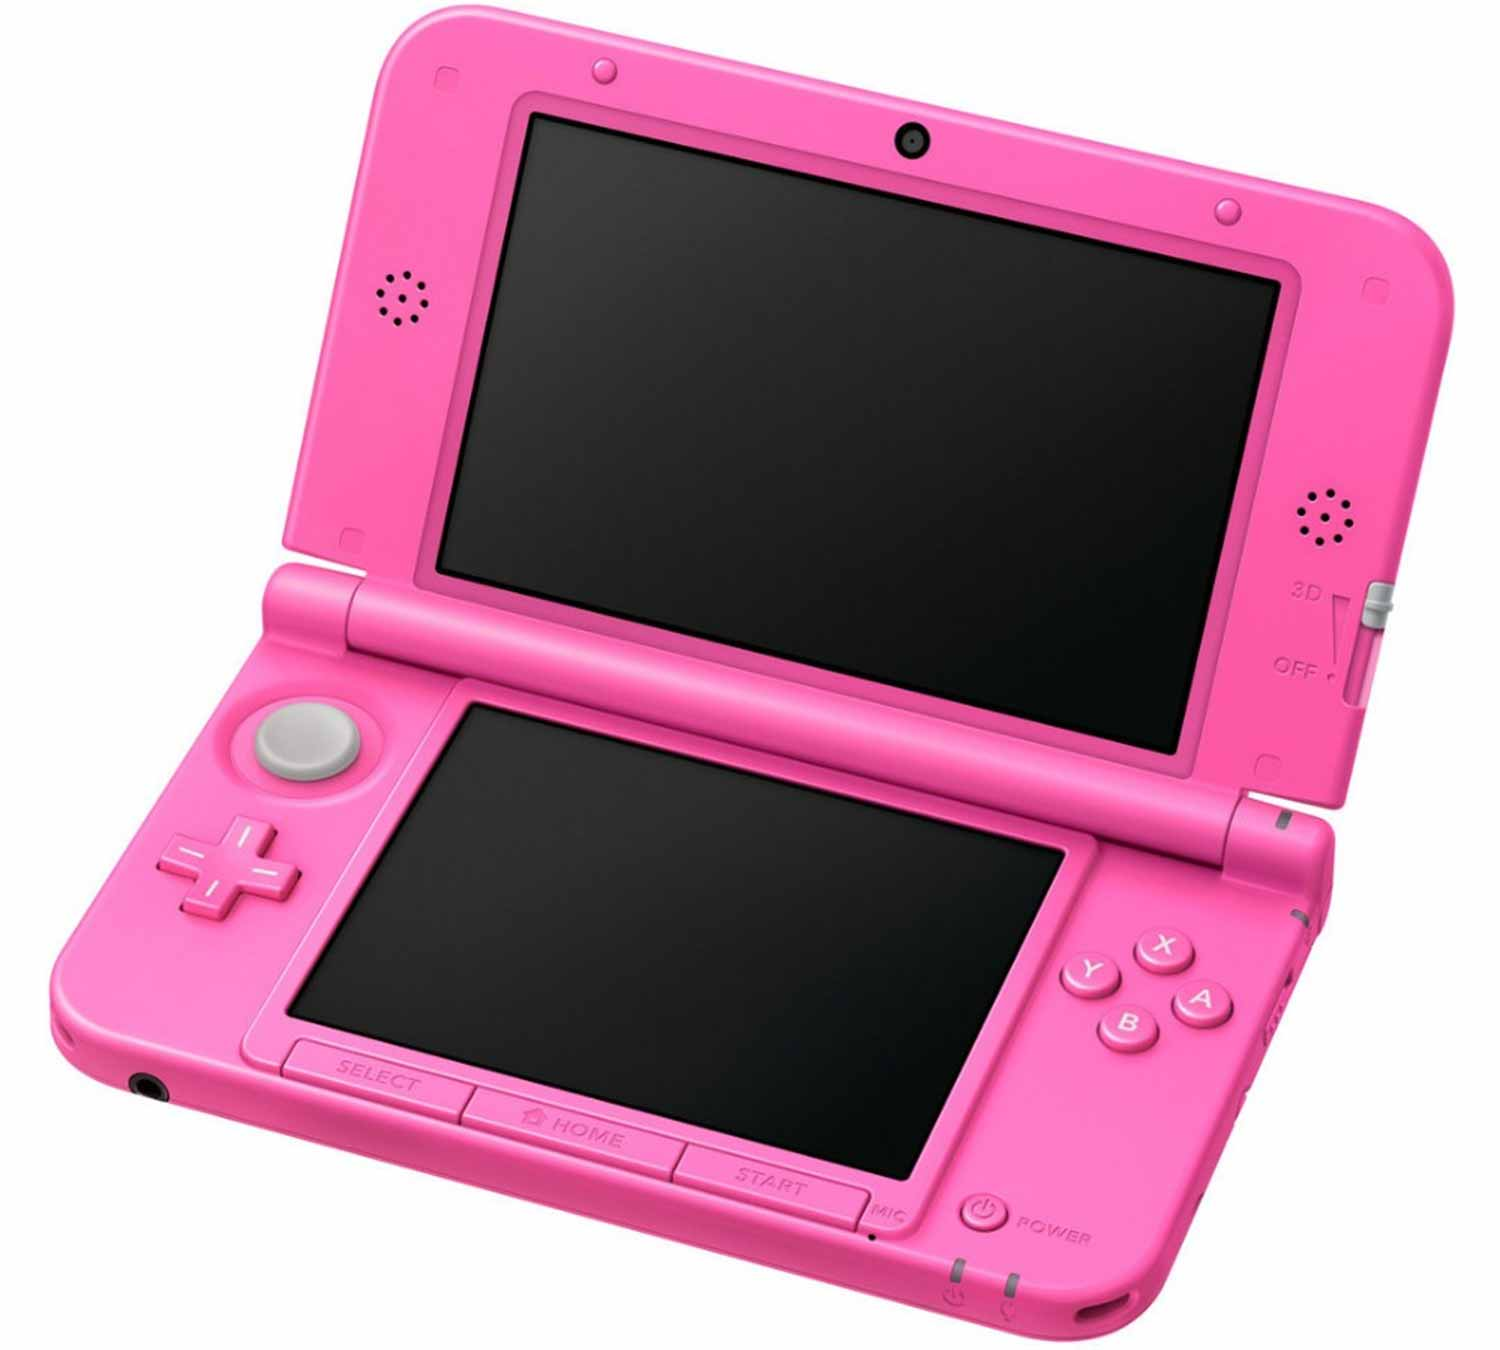 A Chat App Is Coming Today For Nintendo 3DS Via A Third